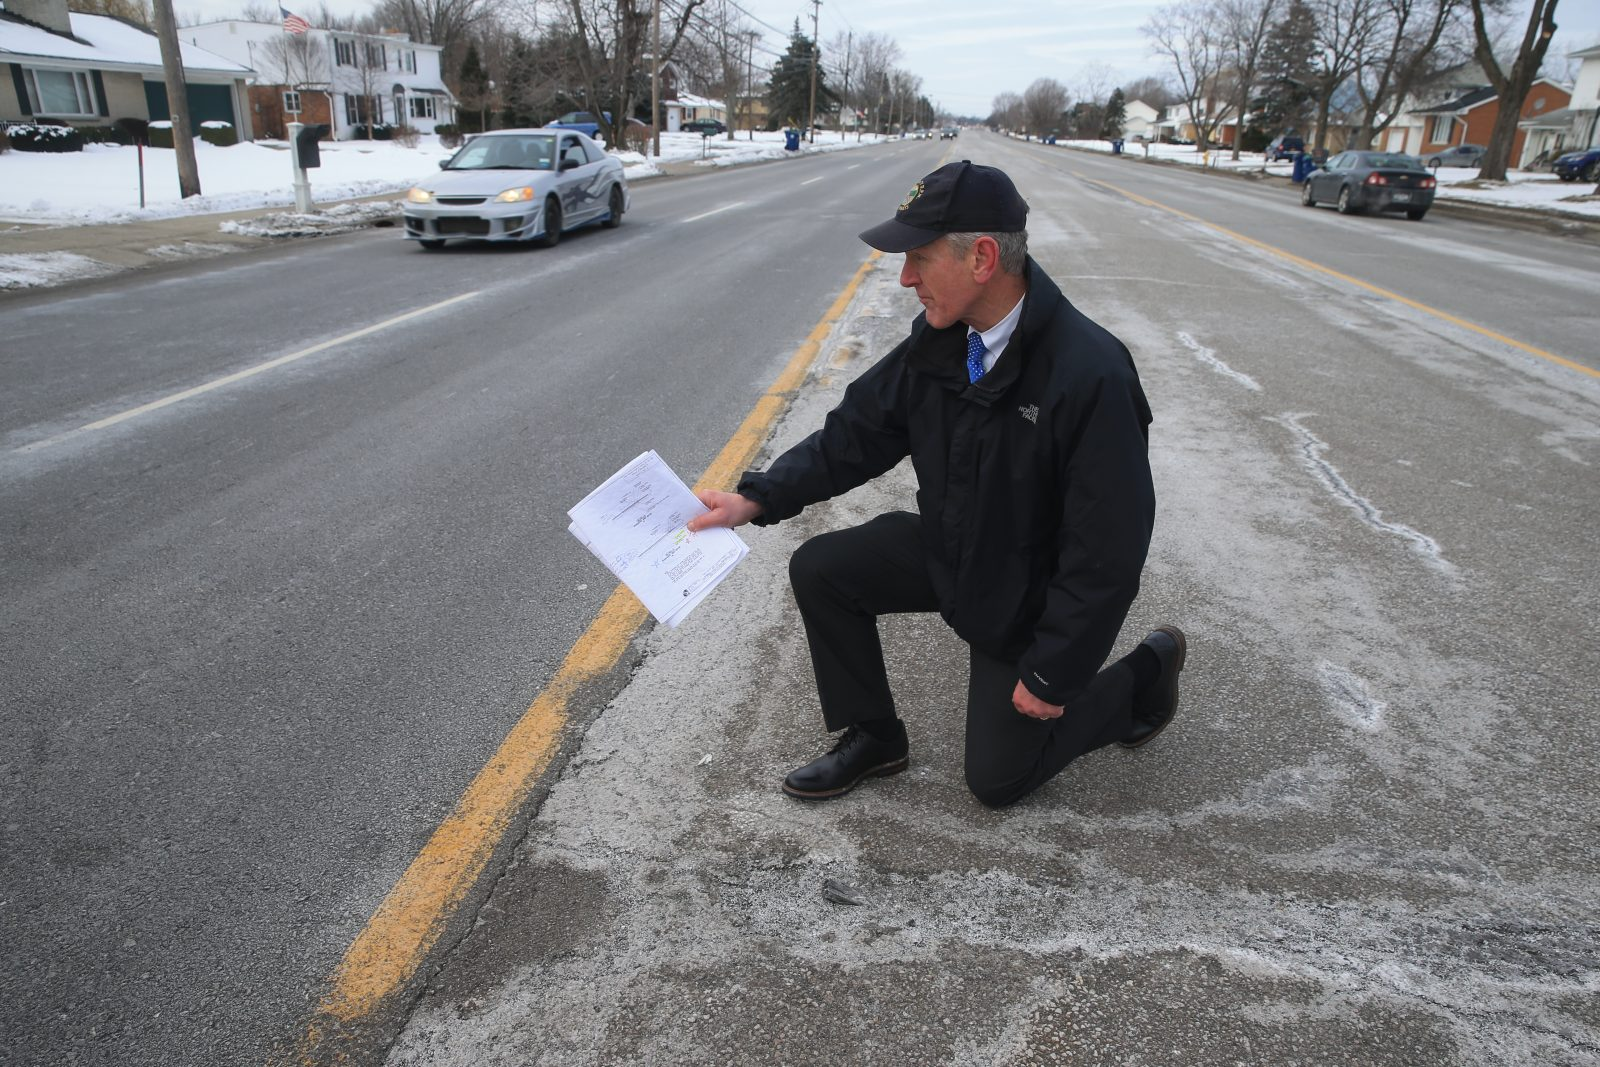 Charles A. Sickler, Erie County's director of engineering, checks out the pavement test strip option on Maple Road in Amherst that has become the county's preferred repaving option after a year-long experiment. (John Hickey/Buffalo News)